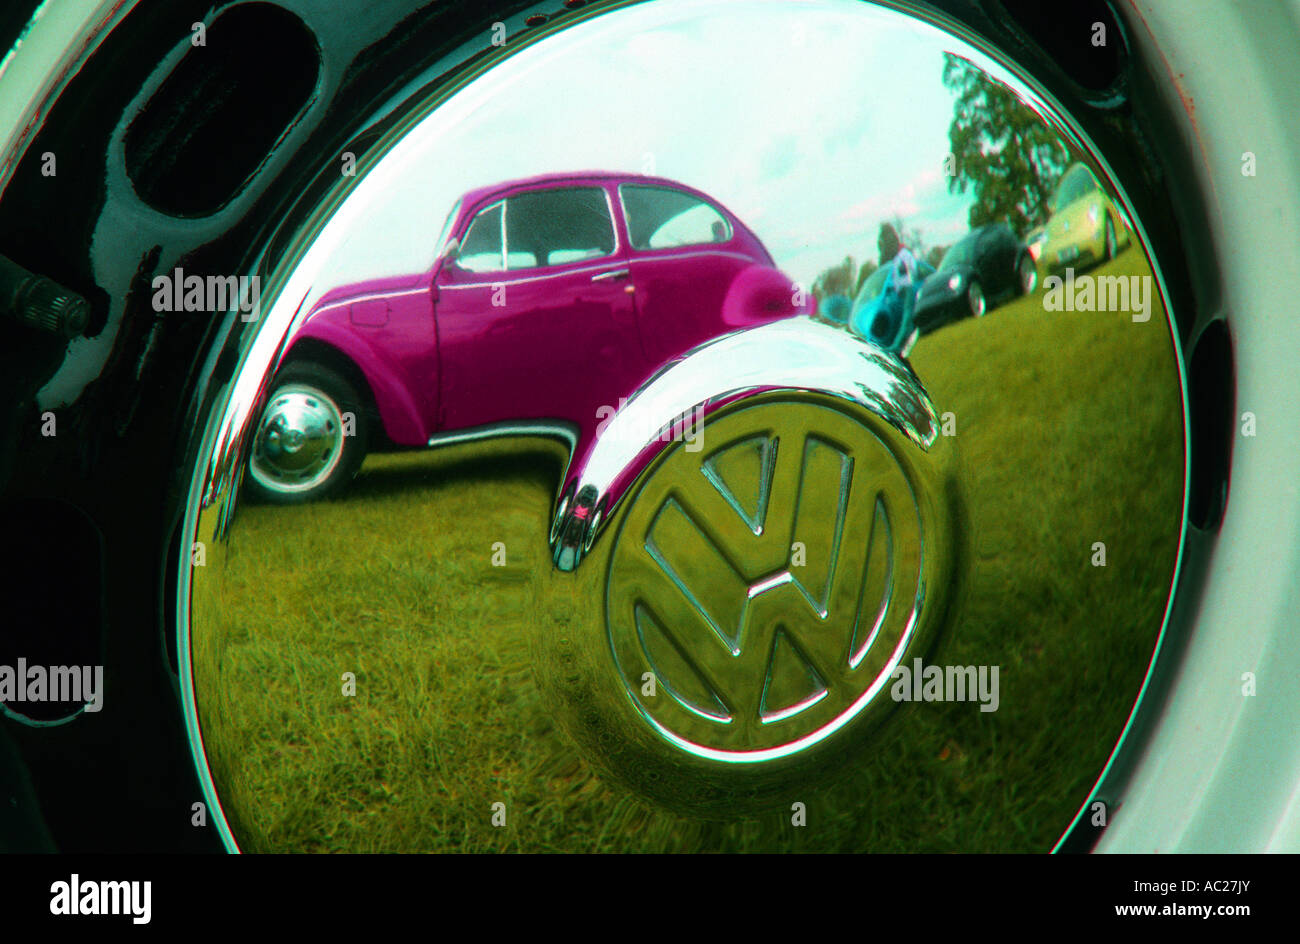 vw beetle 1938 stock photos vw beetle 1938 stock images alamy. Black Bedroom Furniture Sets. Home Design Ideas